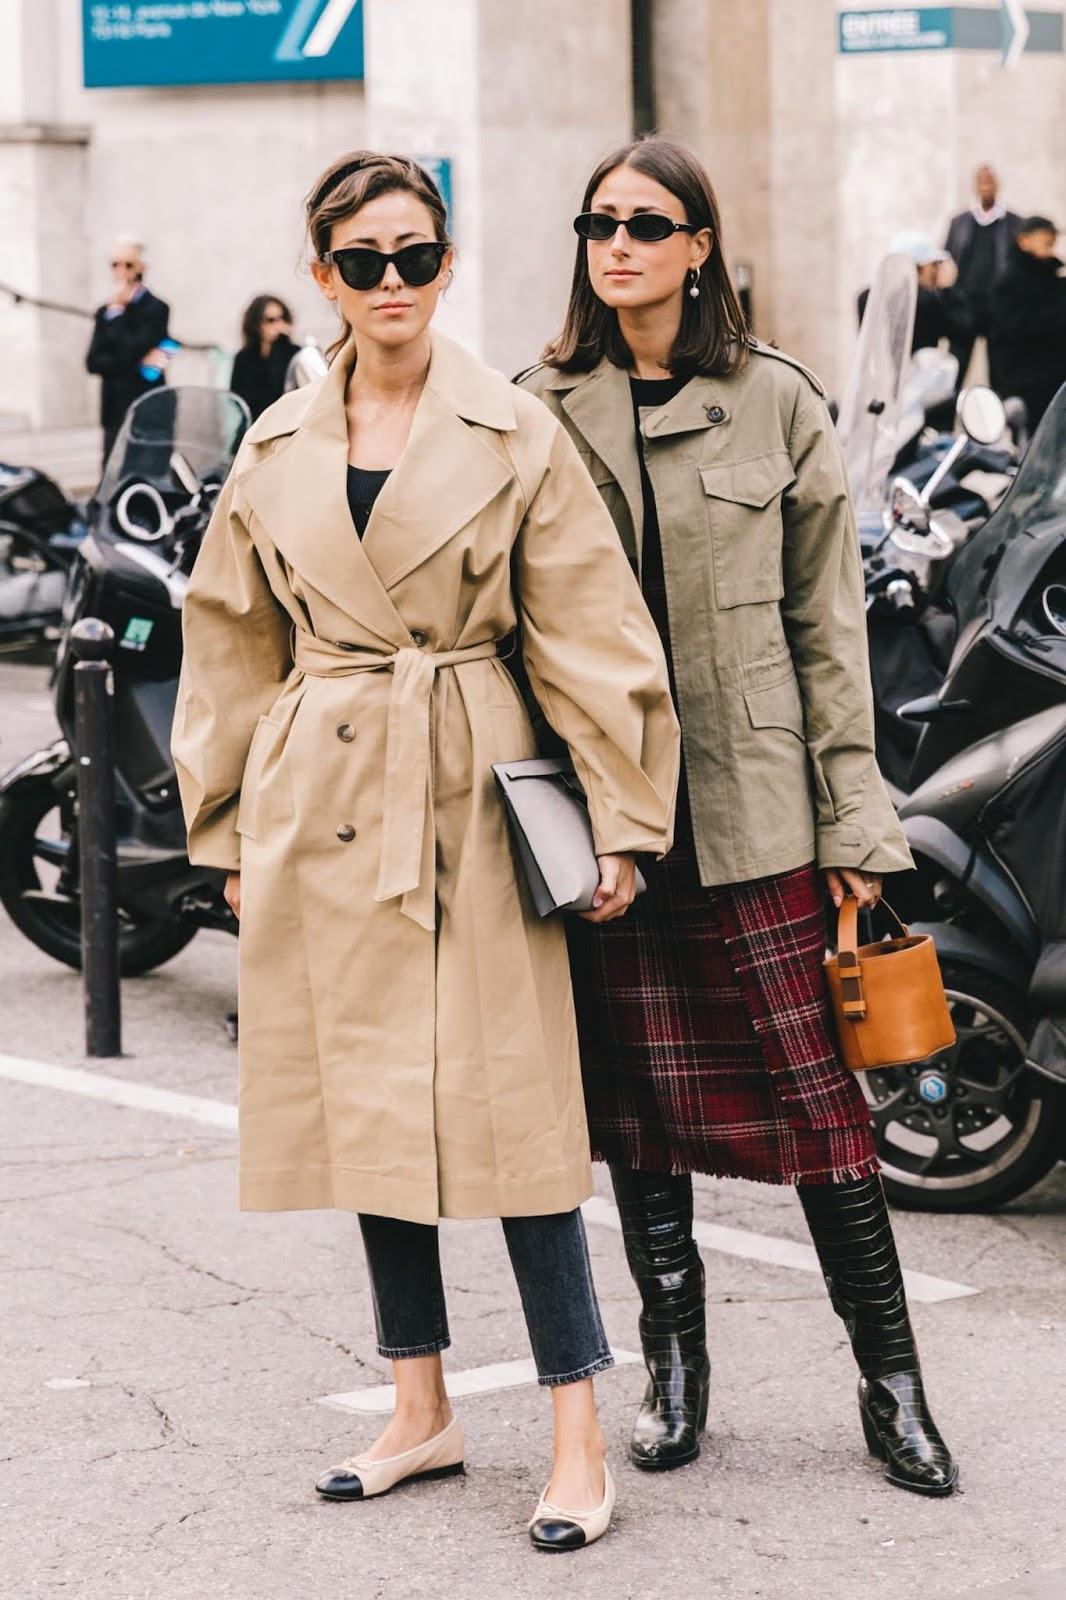 2 Insanely Chic Fall Outfit Ideas to Try Now